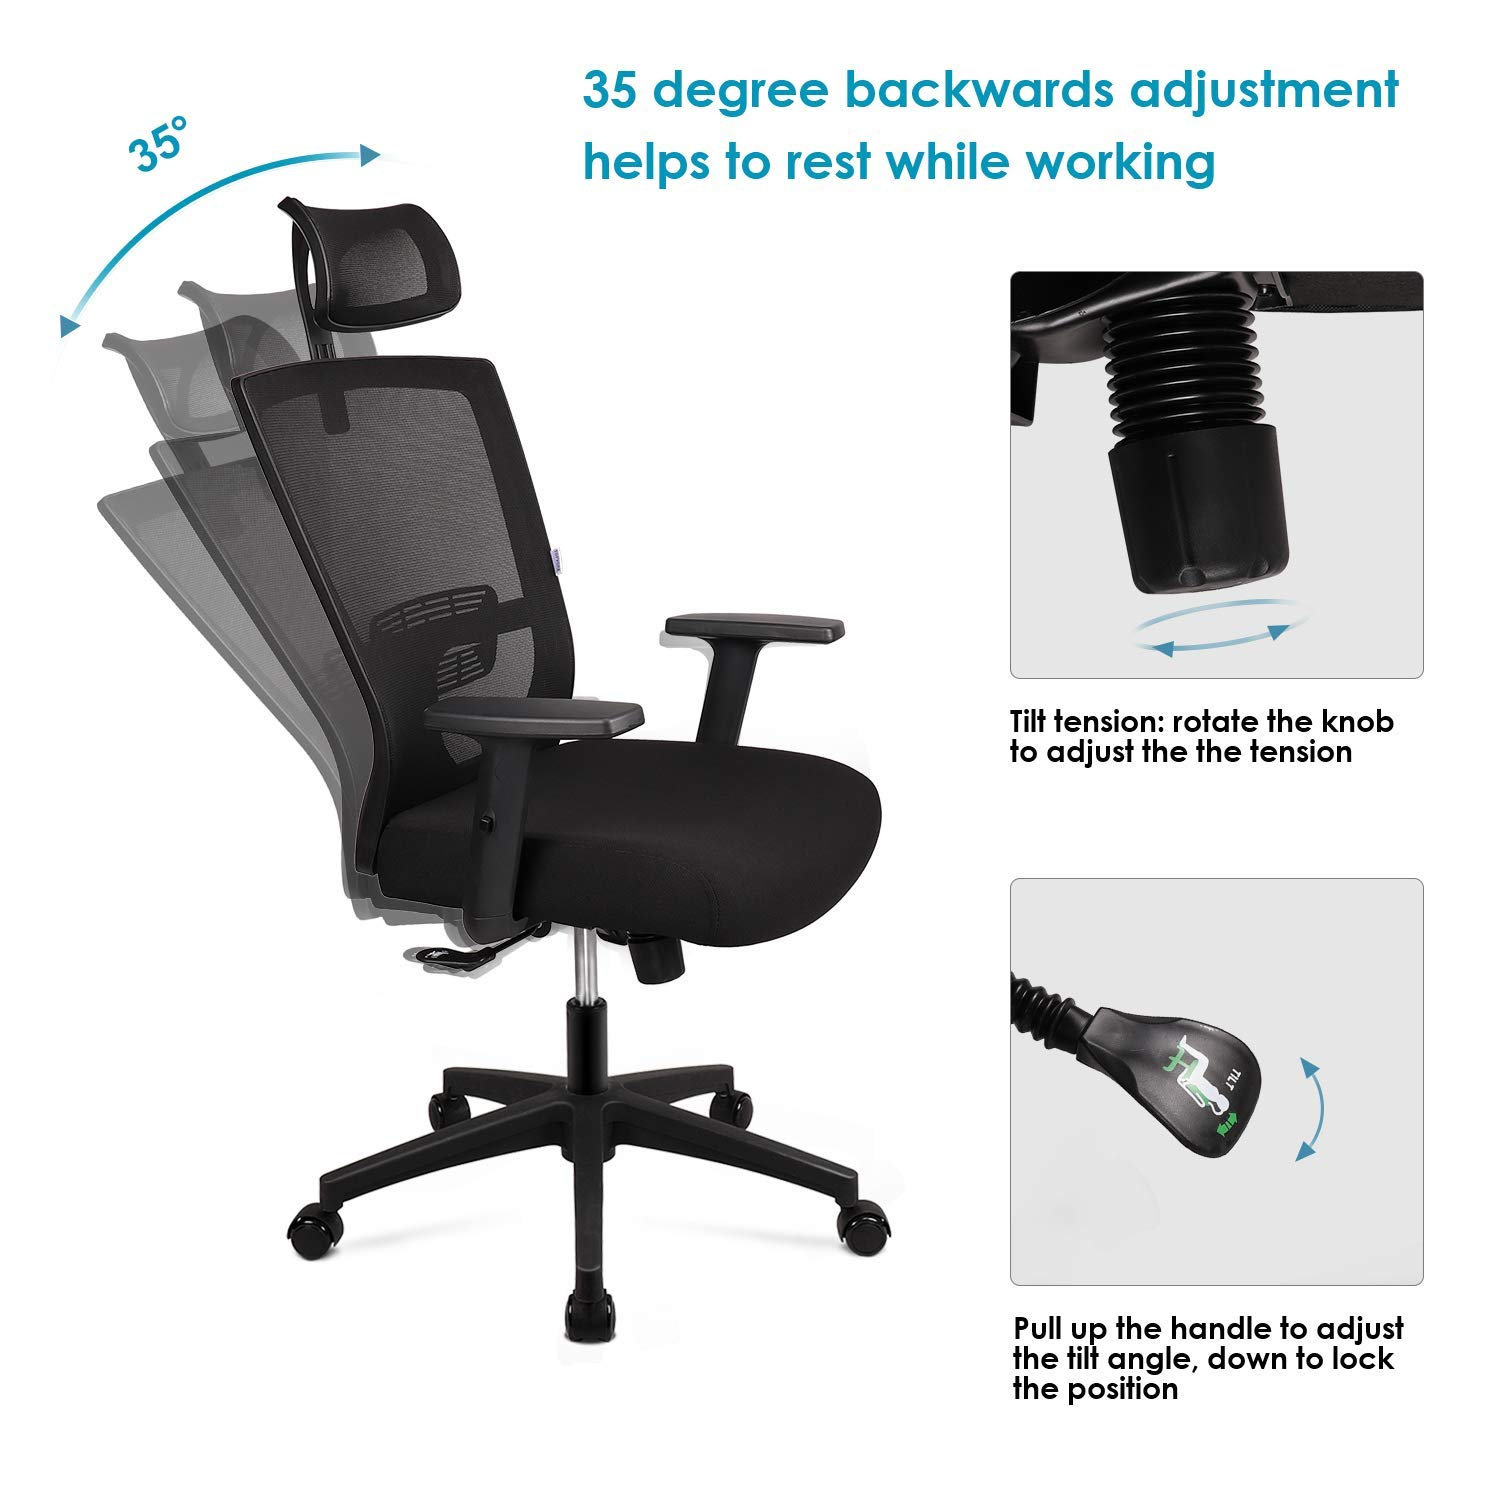 Ergonomic Office Chair Mesh Chair Heavy Duty Office Chair Adjustable Headrest And Armrest Home Office Chair With Tilt Function And Position Lock London Computer Cleaning